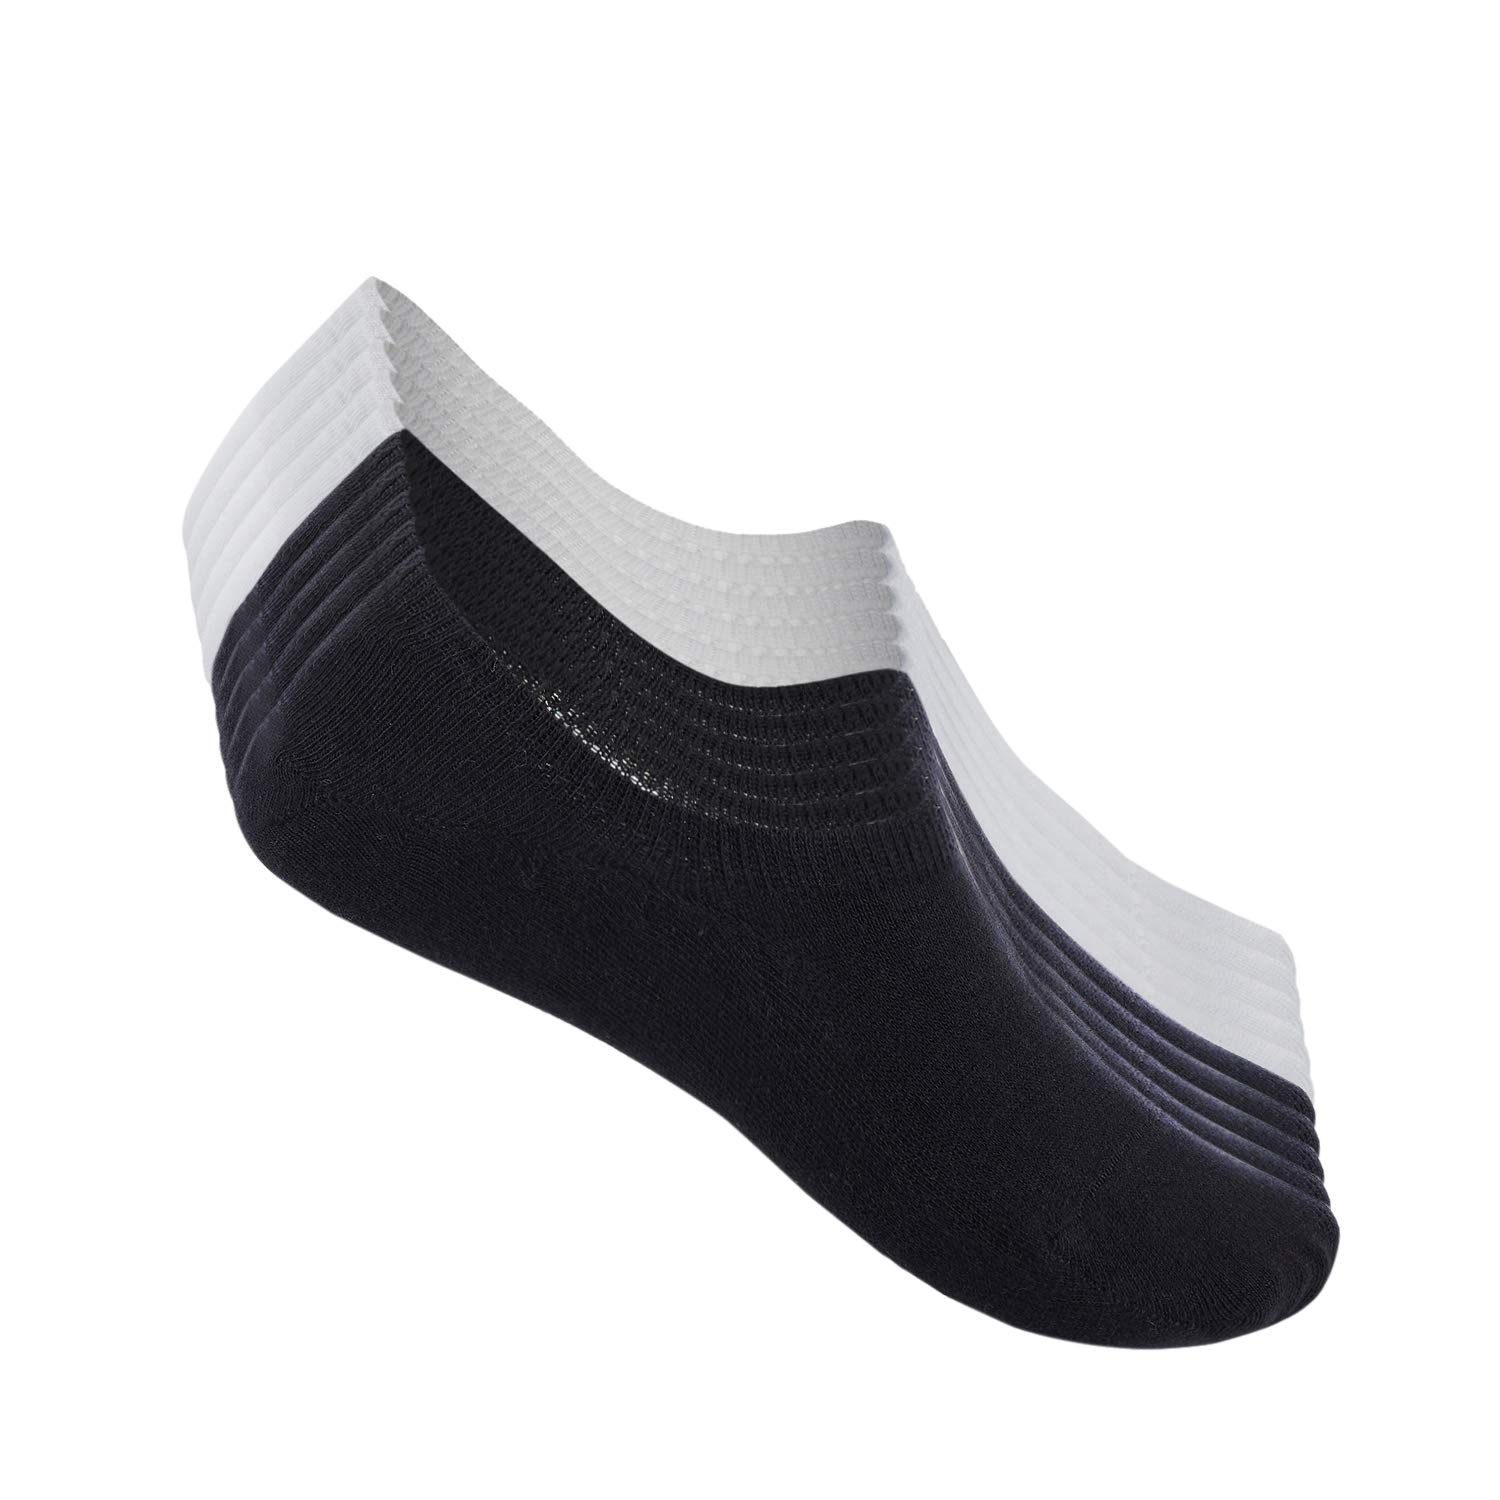 REDTAG Ladies 3 Pack Cushioned Sport Ankle Socks 4-8